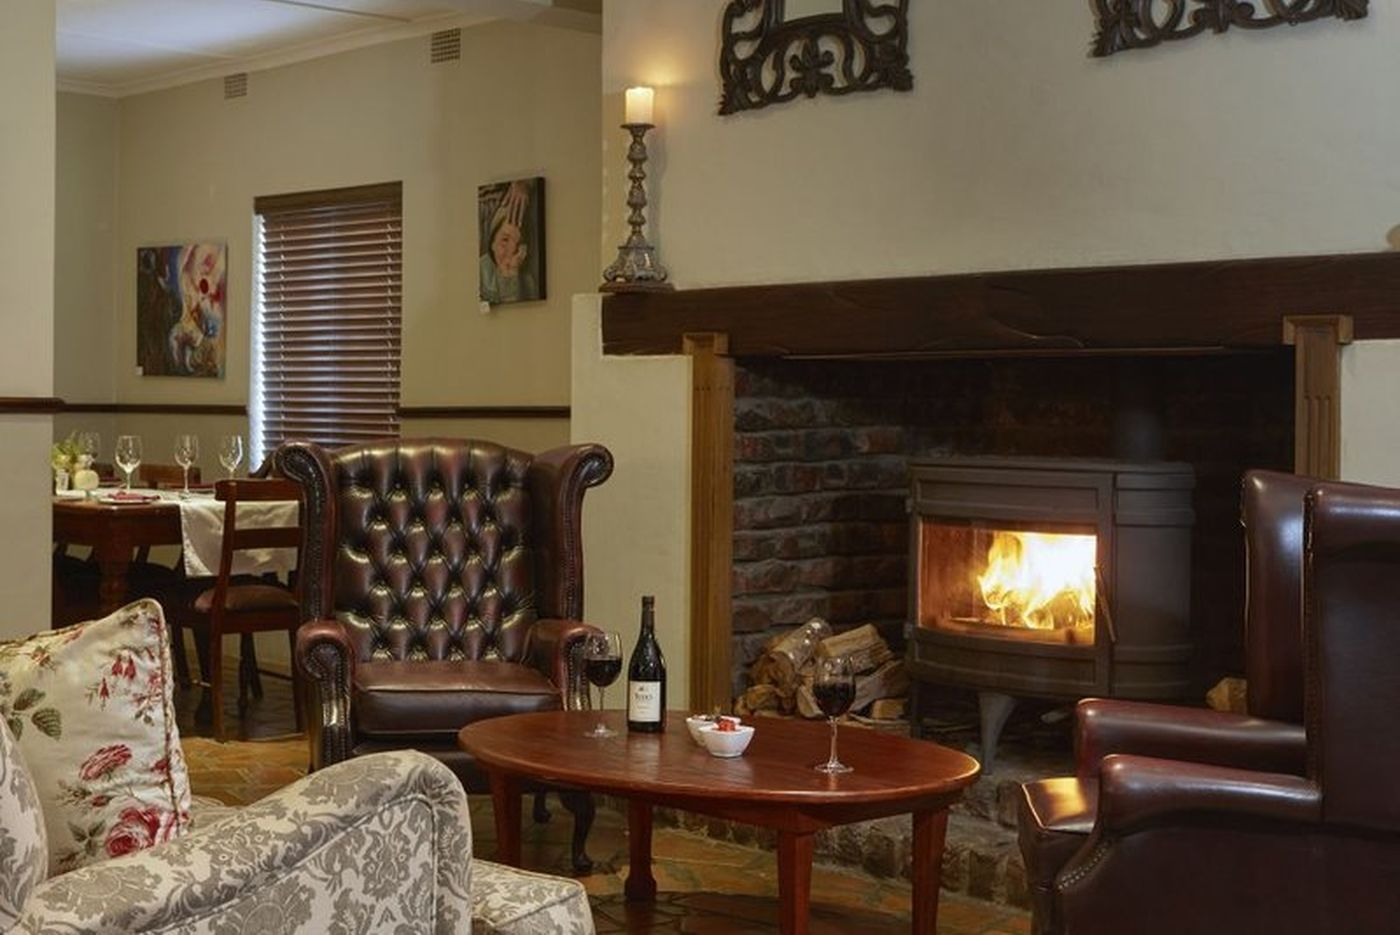 The Tulbagh Hotel 2